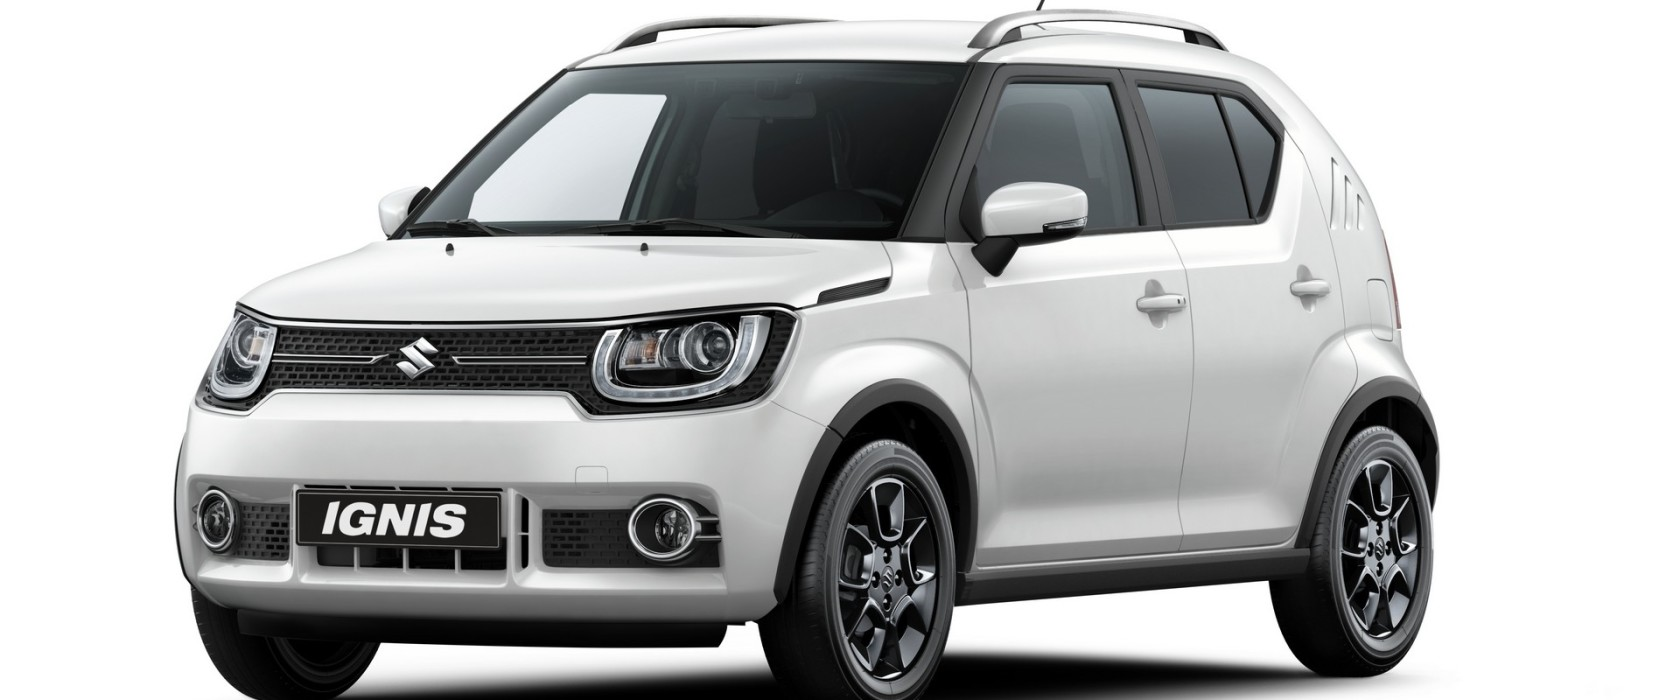 suzuki ignis 2017 il mini suv debutta a parigi red live. Black Bedroom Furniture Sets. Home Design Ideas